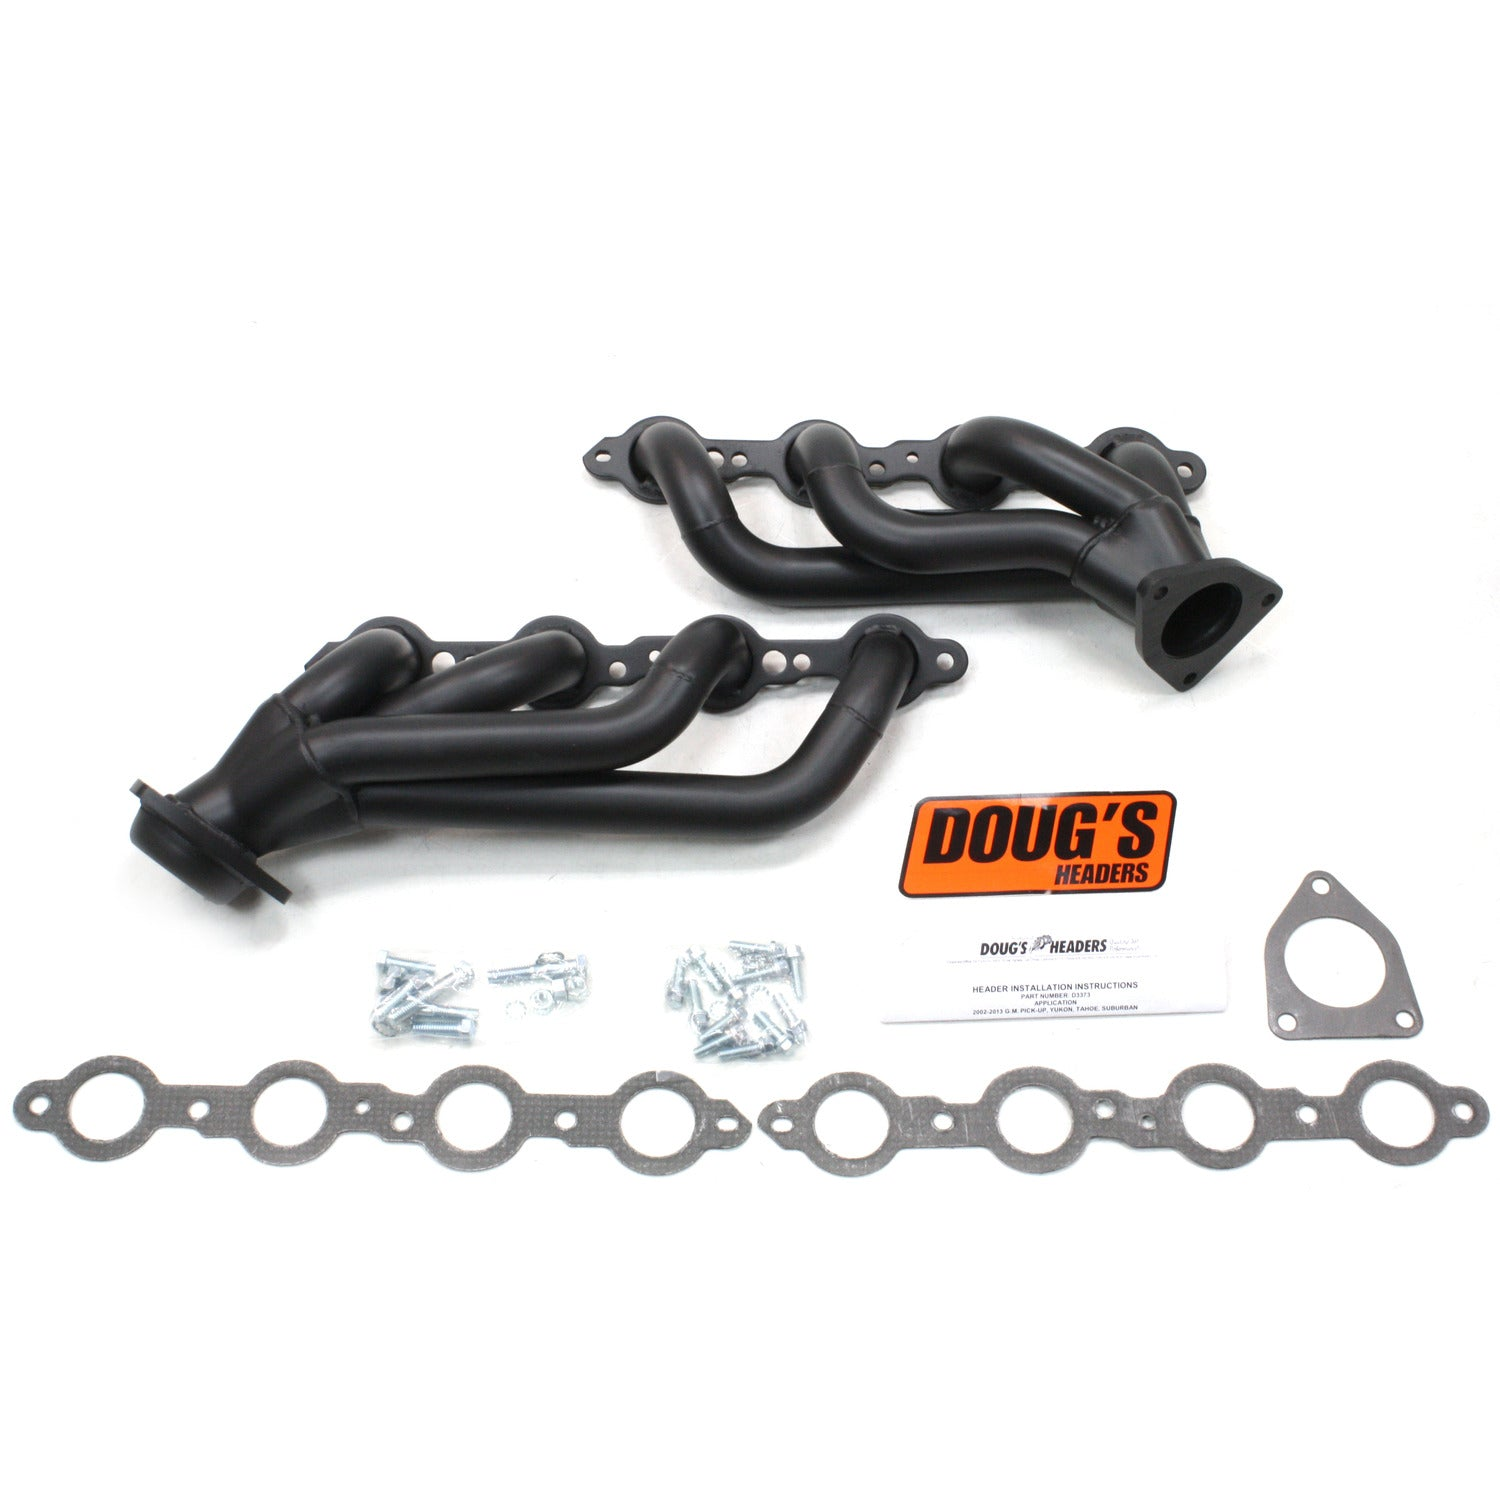 "Doug's Headers D3373-B 1 5/8"" 4-Tube Manifold Replacement Header Chevrolet Truck 5.3L 02-07 Hi-Temp Black Coating"